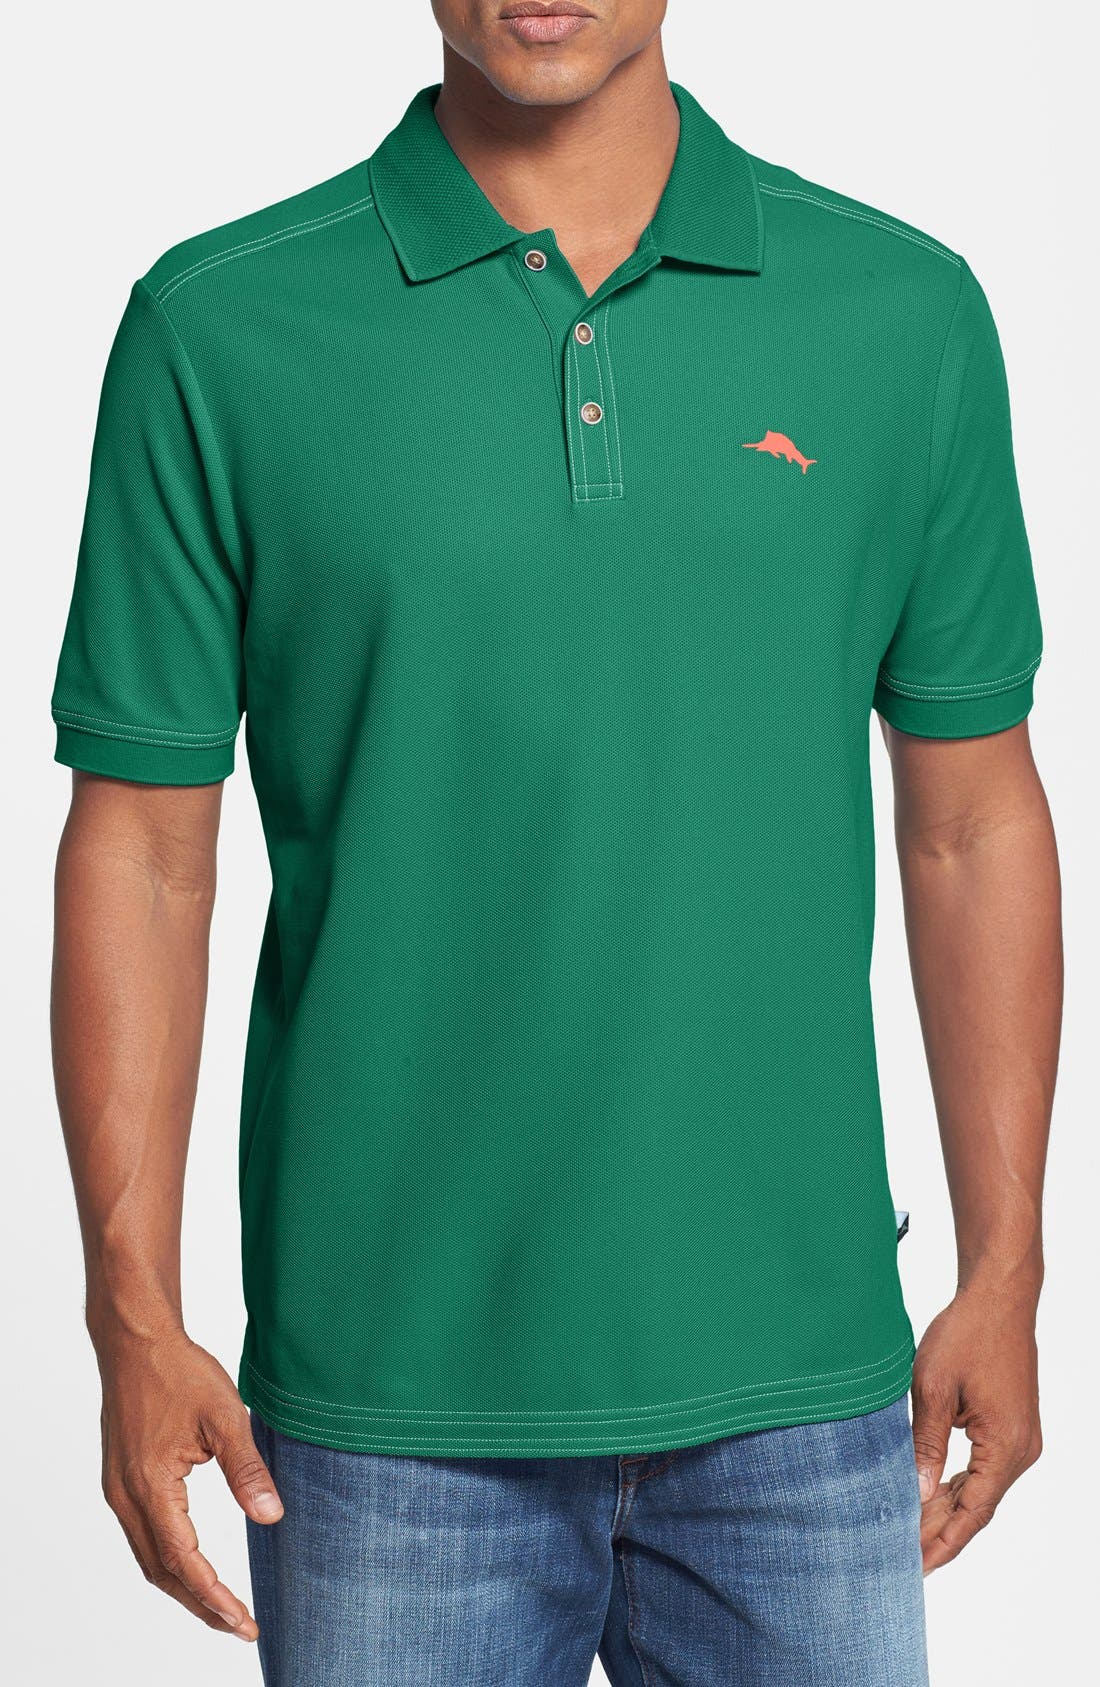 'The Emfielder' Original Fit Piqué Polo,                             Main thumbnail 43, color,